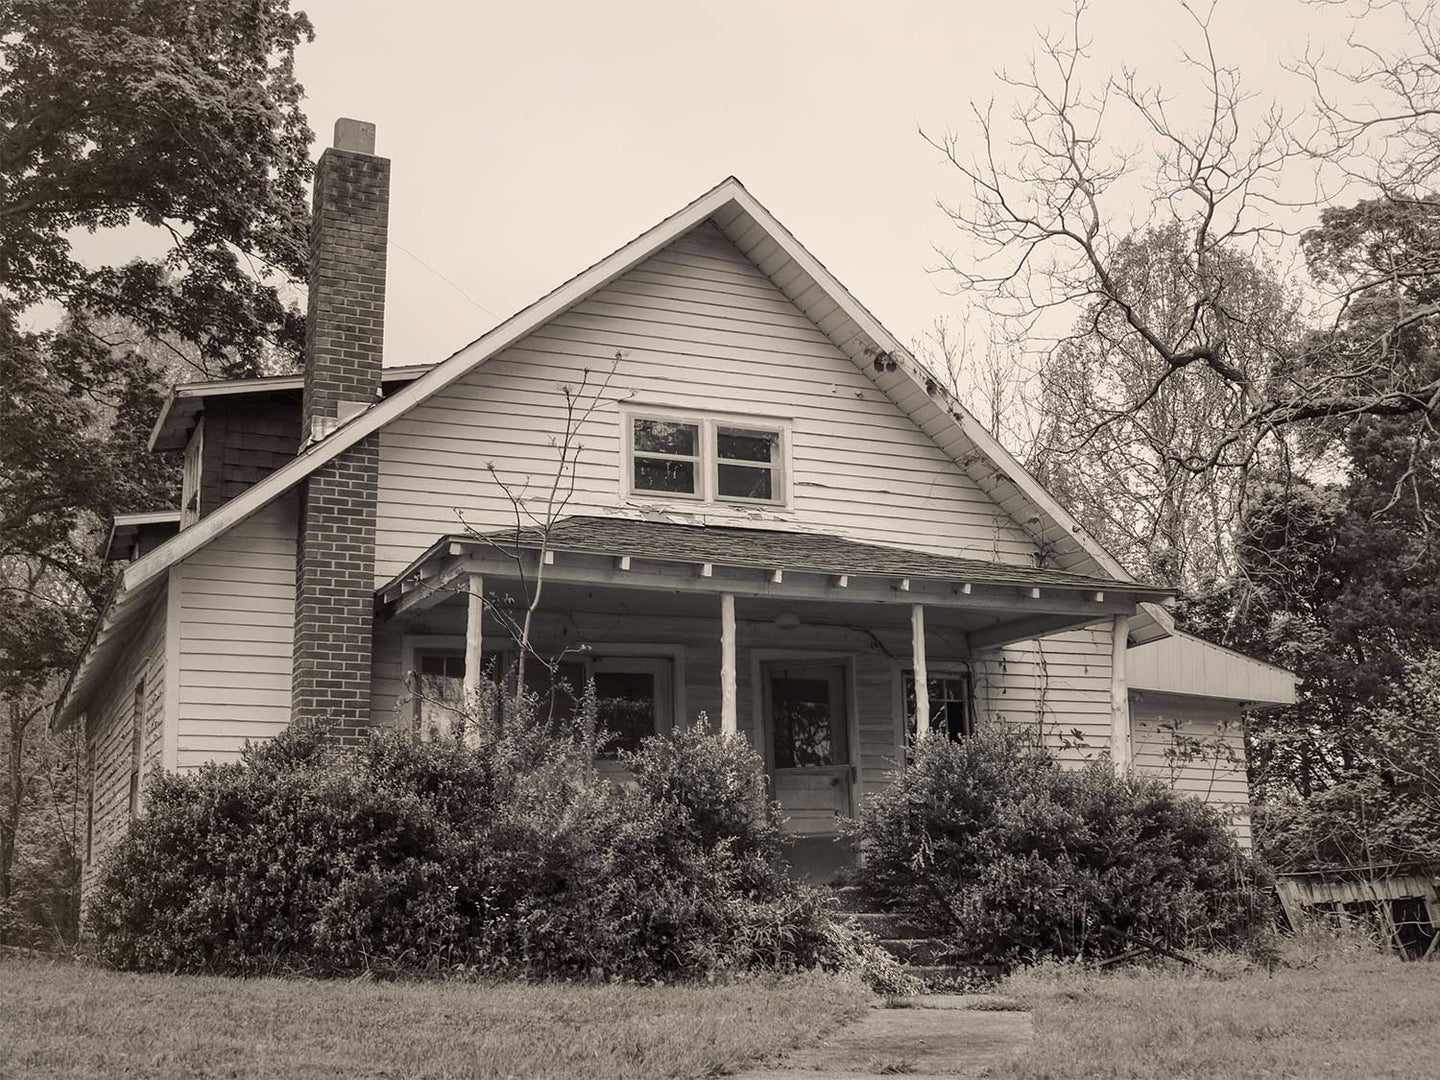 A black and white photo of an old farm house with peeling paint and oversized bushes growing beside the front porch.